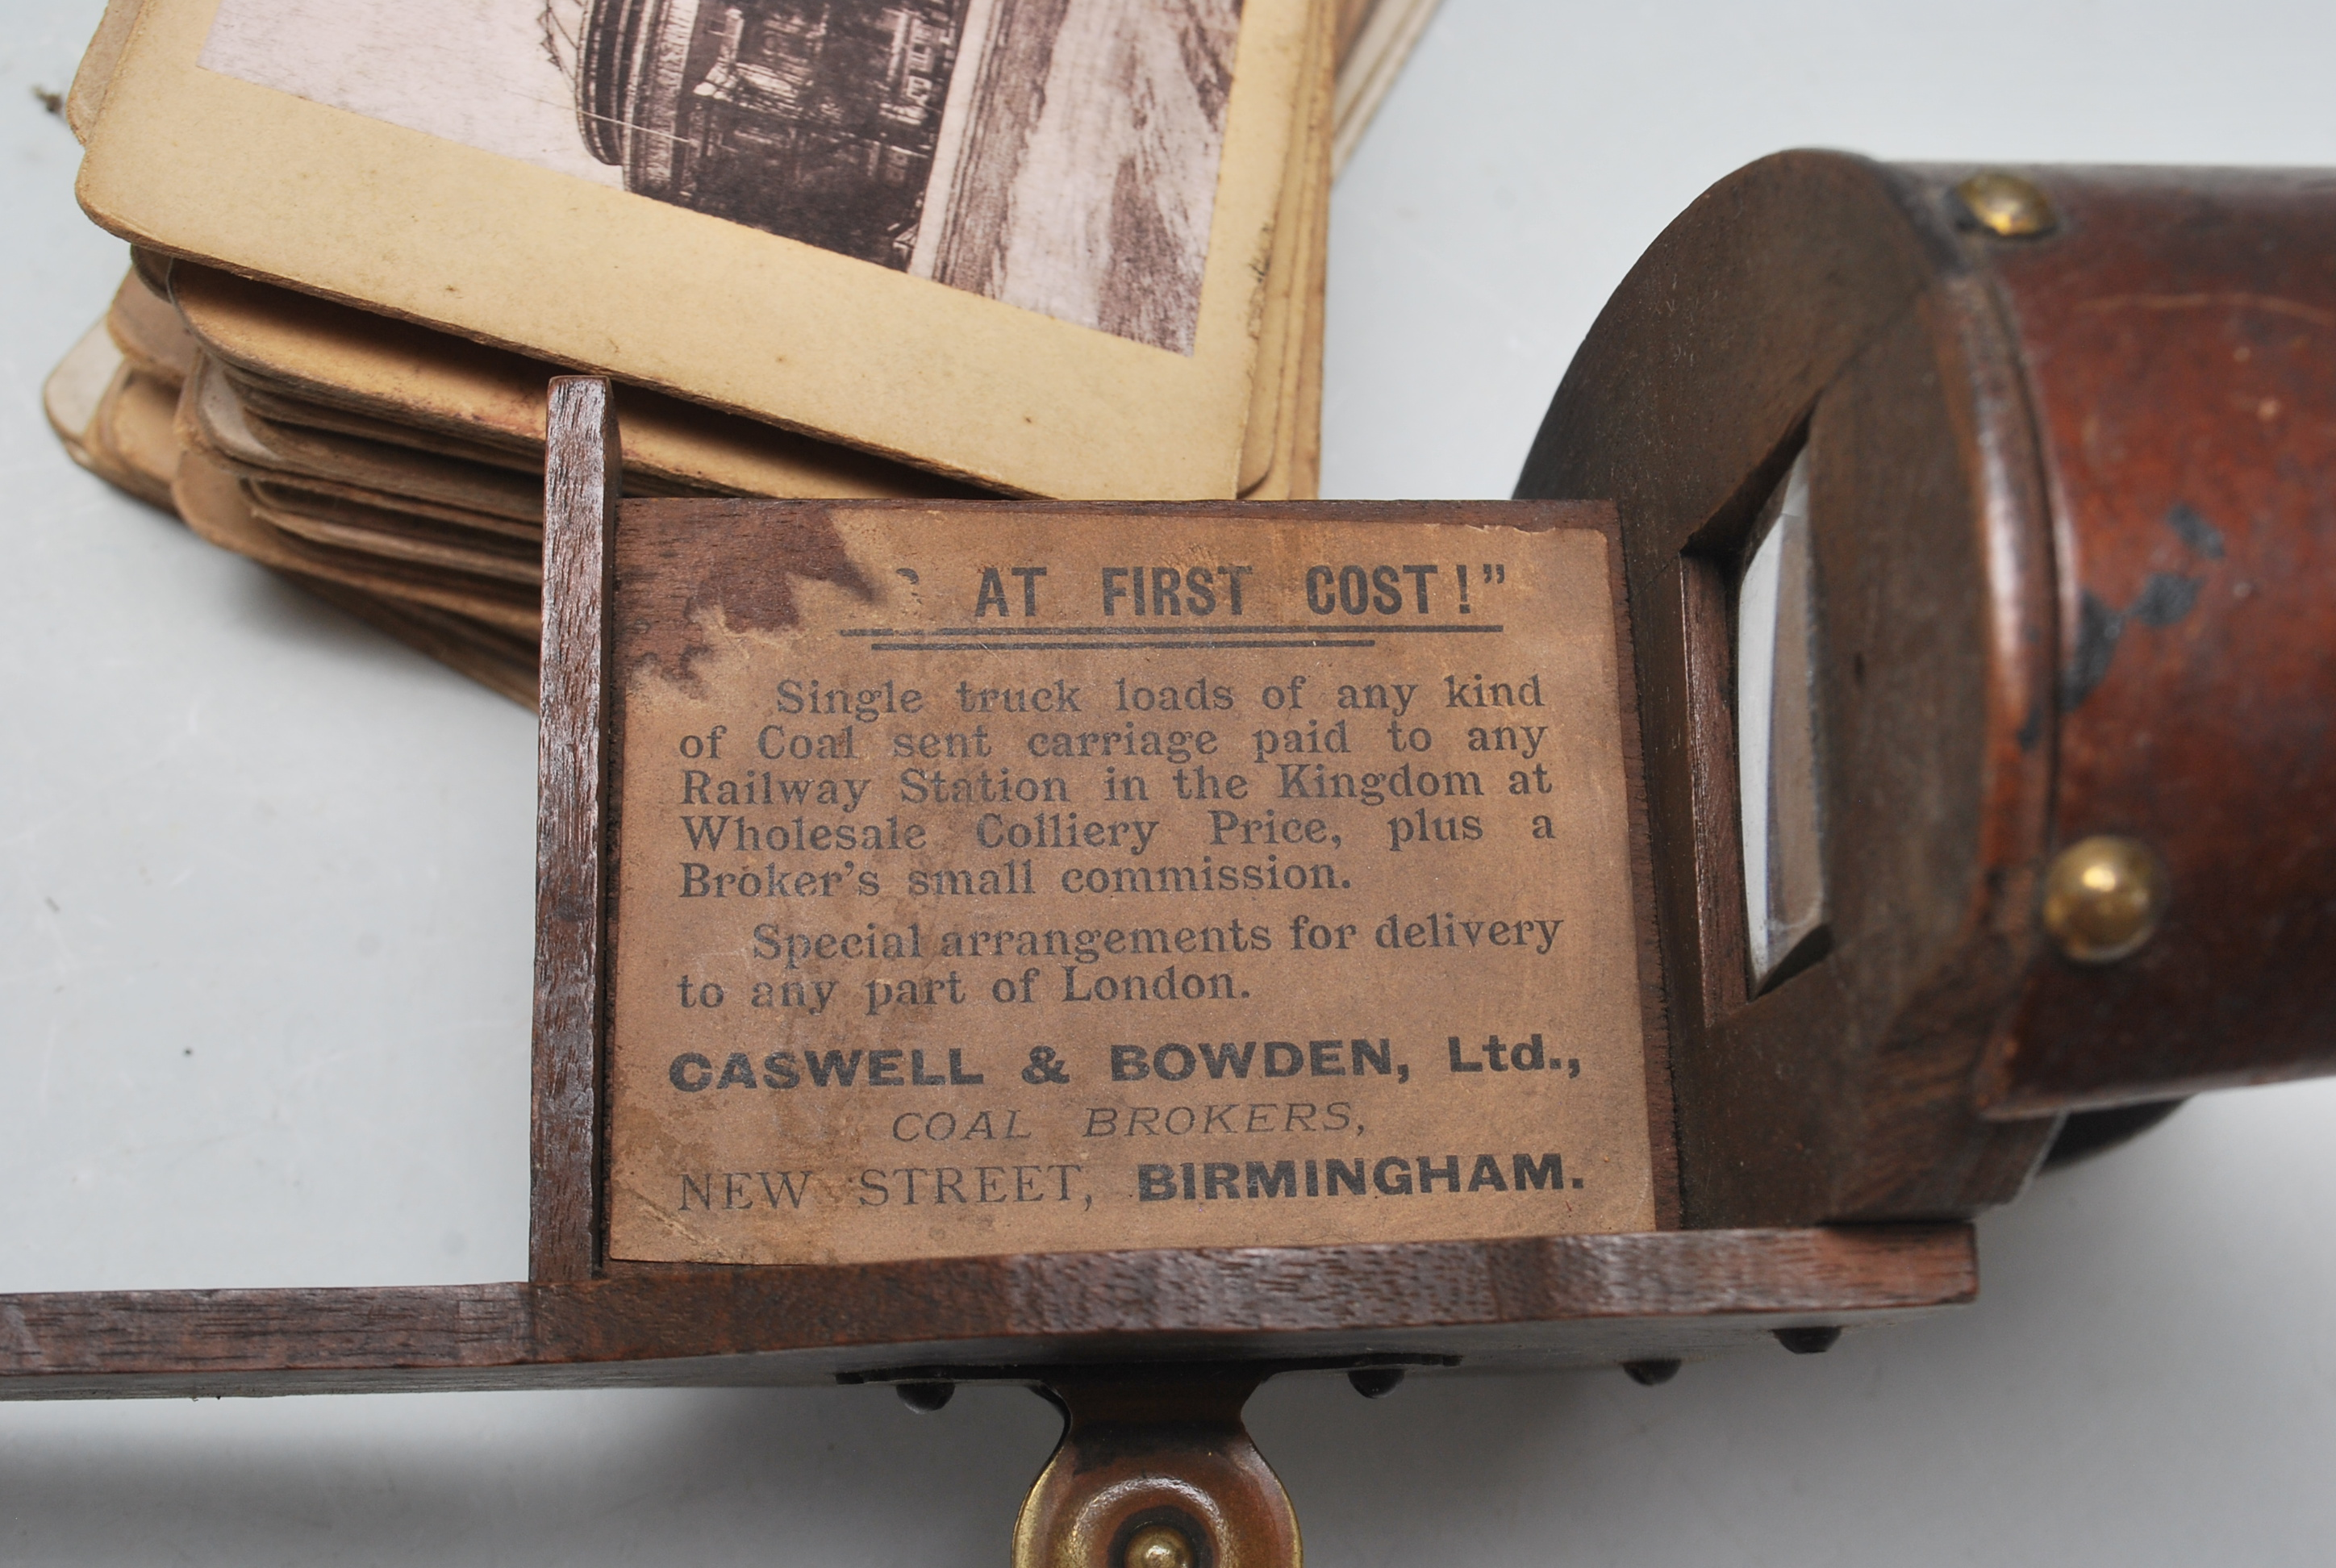 A LATE 19TH CENTURY VICTORIAN STEREOSCOPE VIEWER WITH SLIDES OF LONDON, BIRMINGHAM AND SOUTH AFRICA - Image 3 of 5